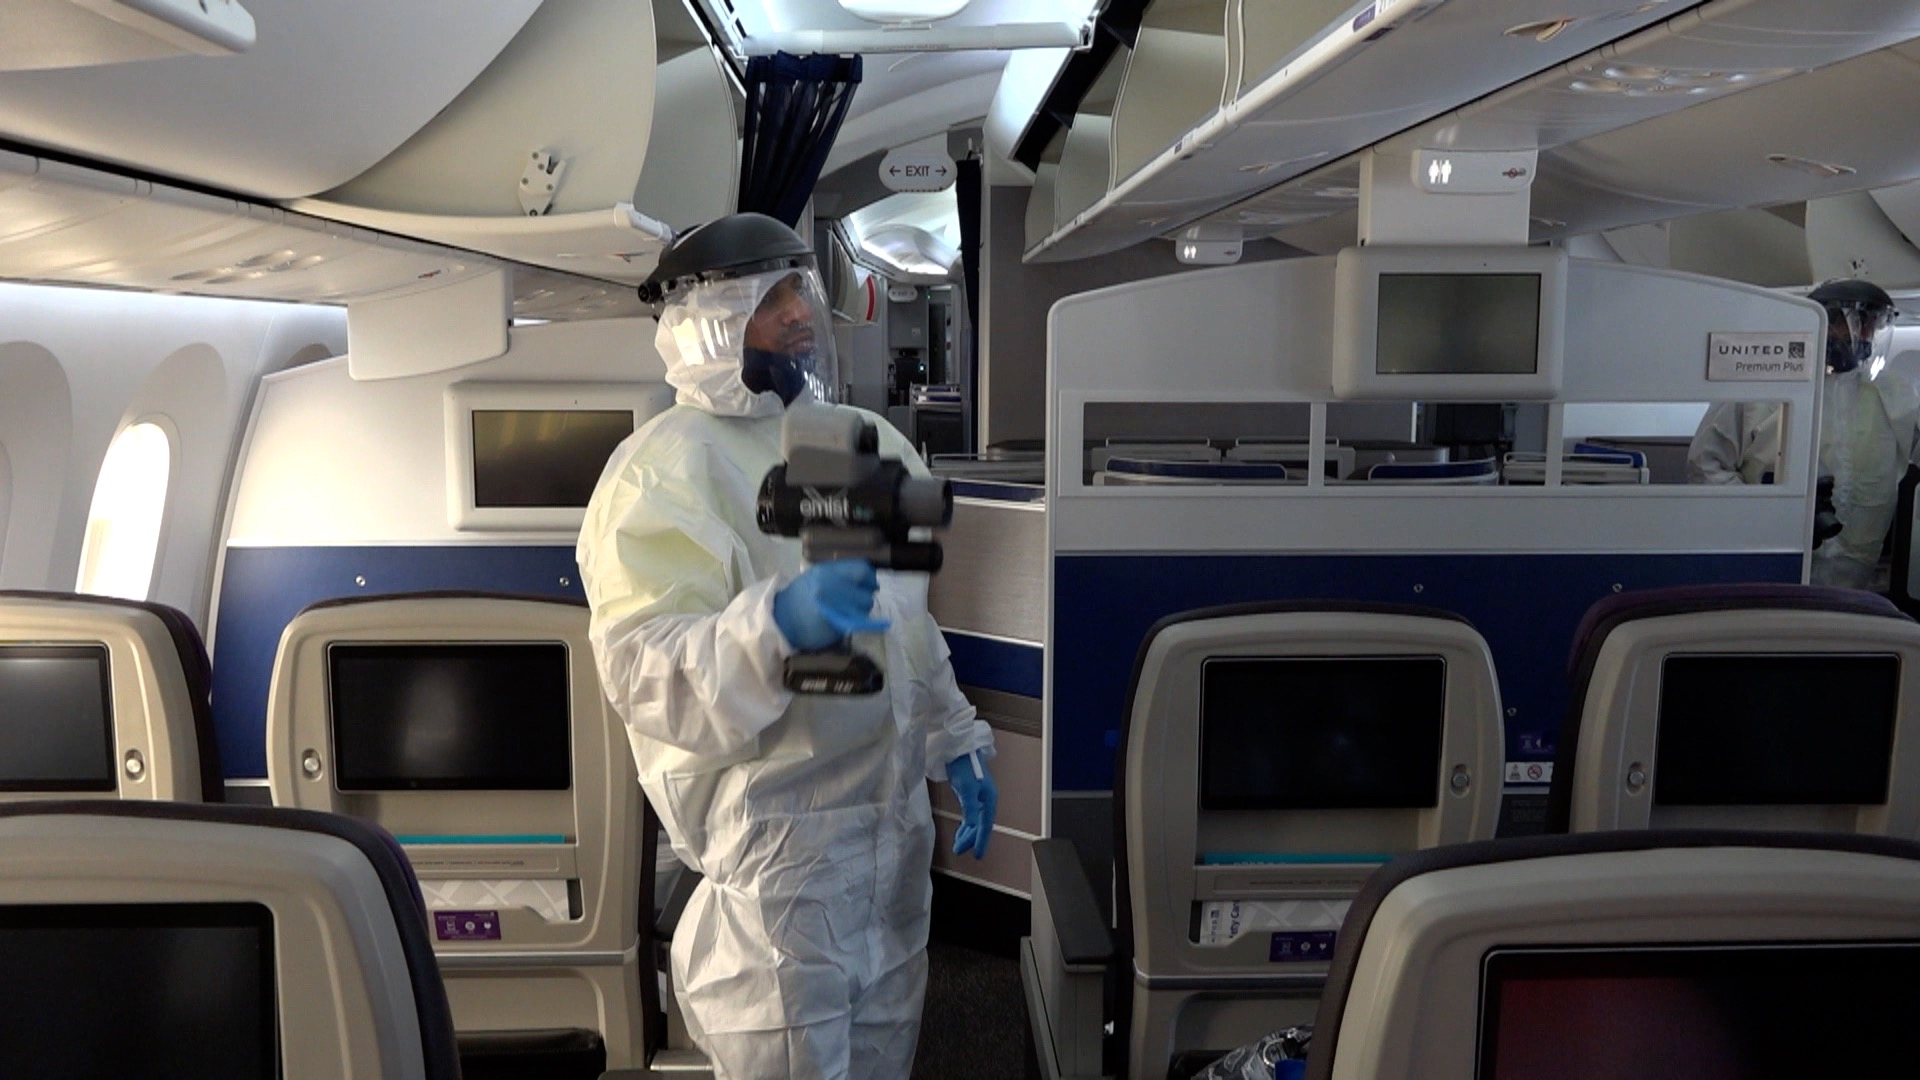 United Airlines LHR Electrostatic Spraying